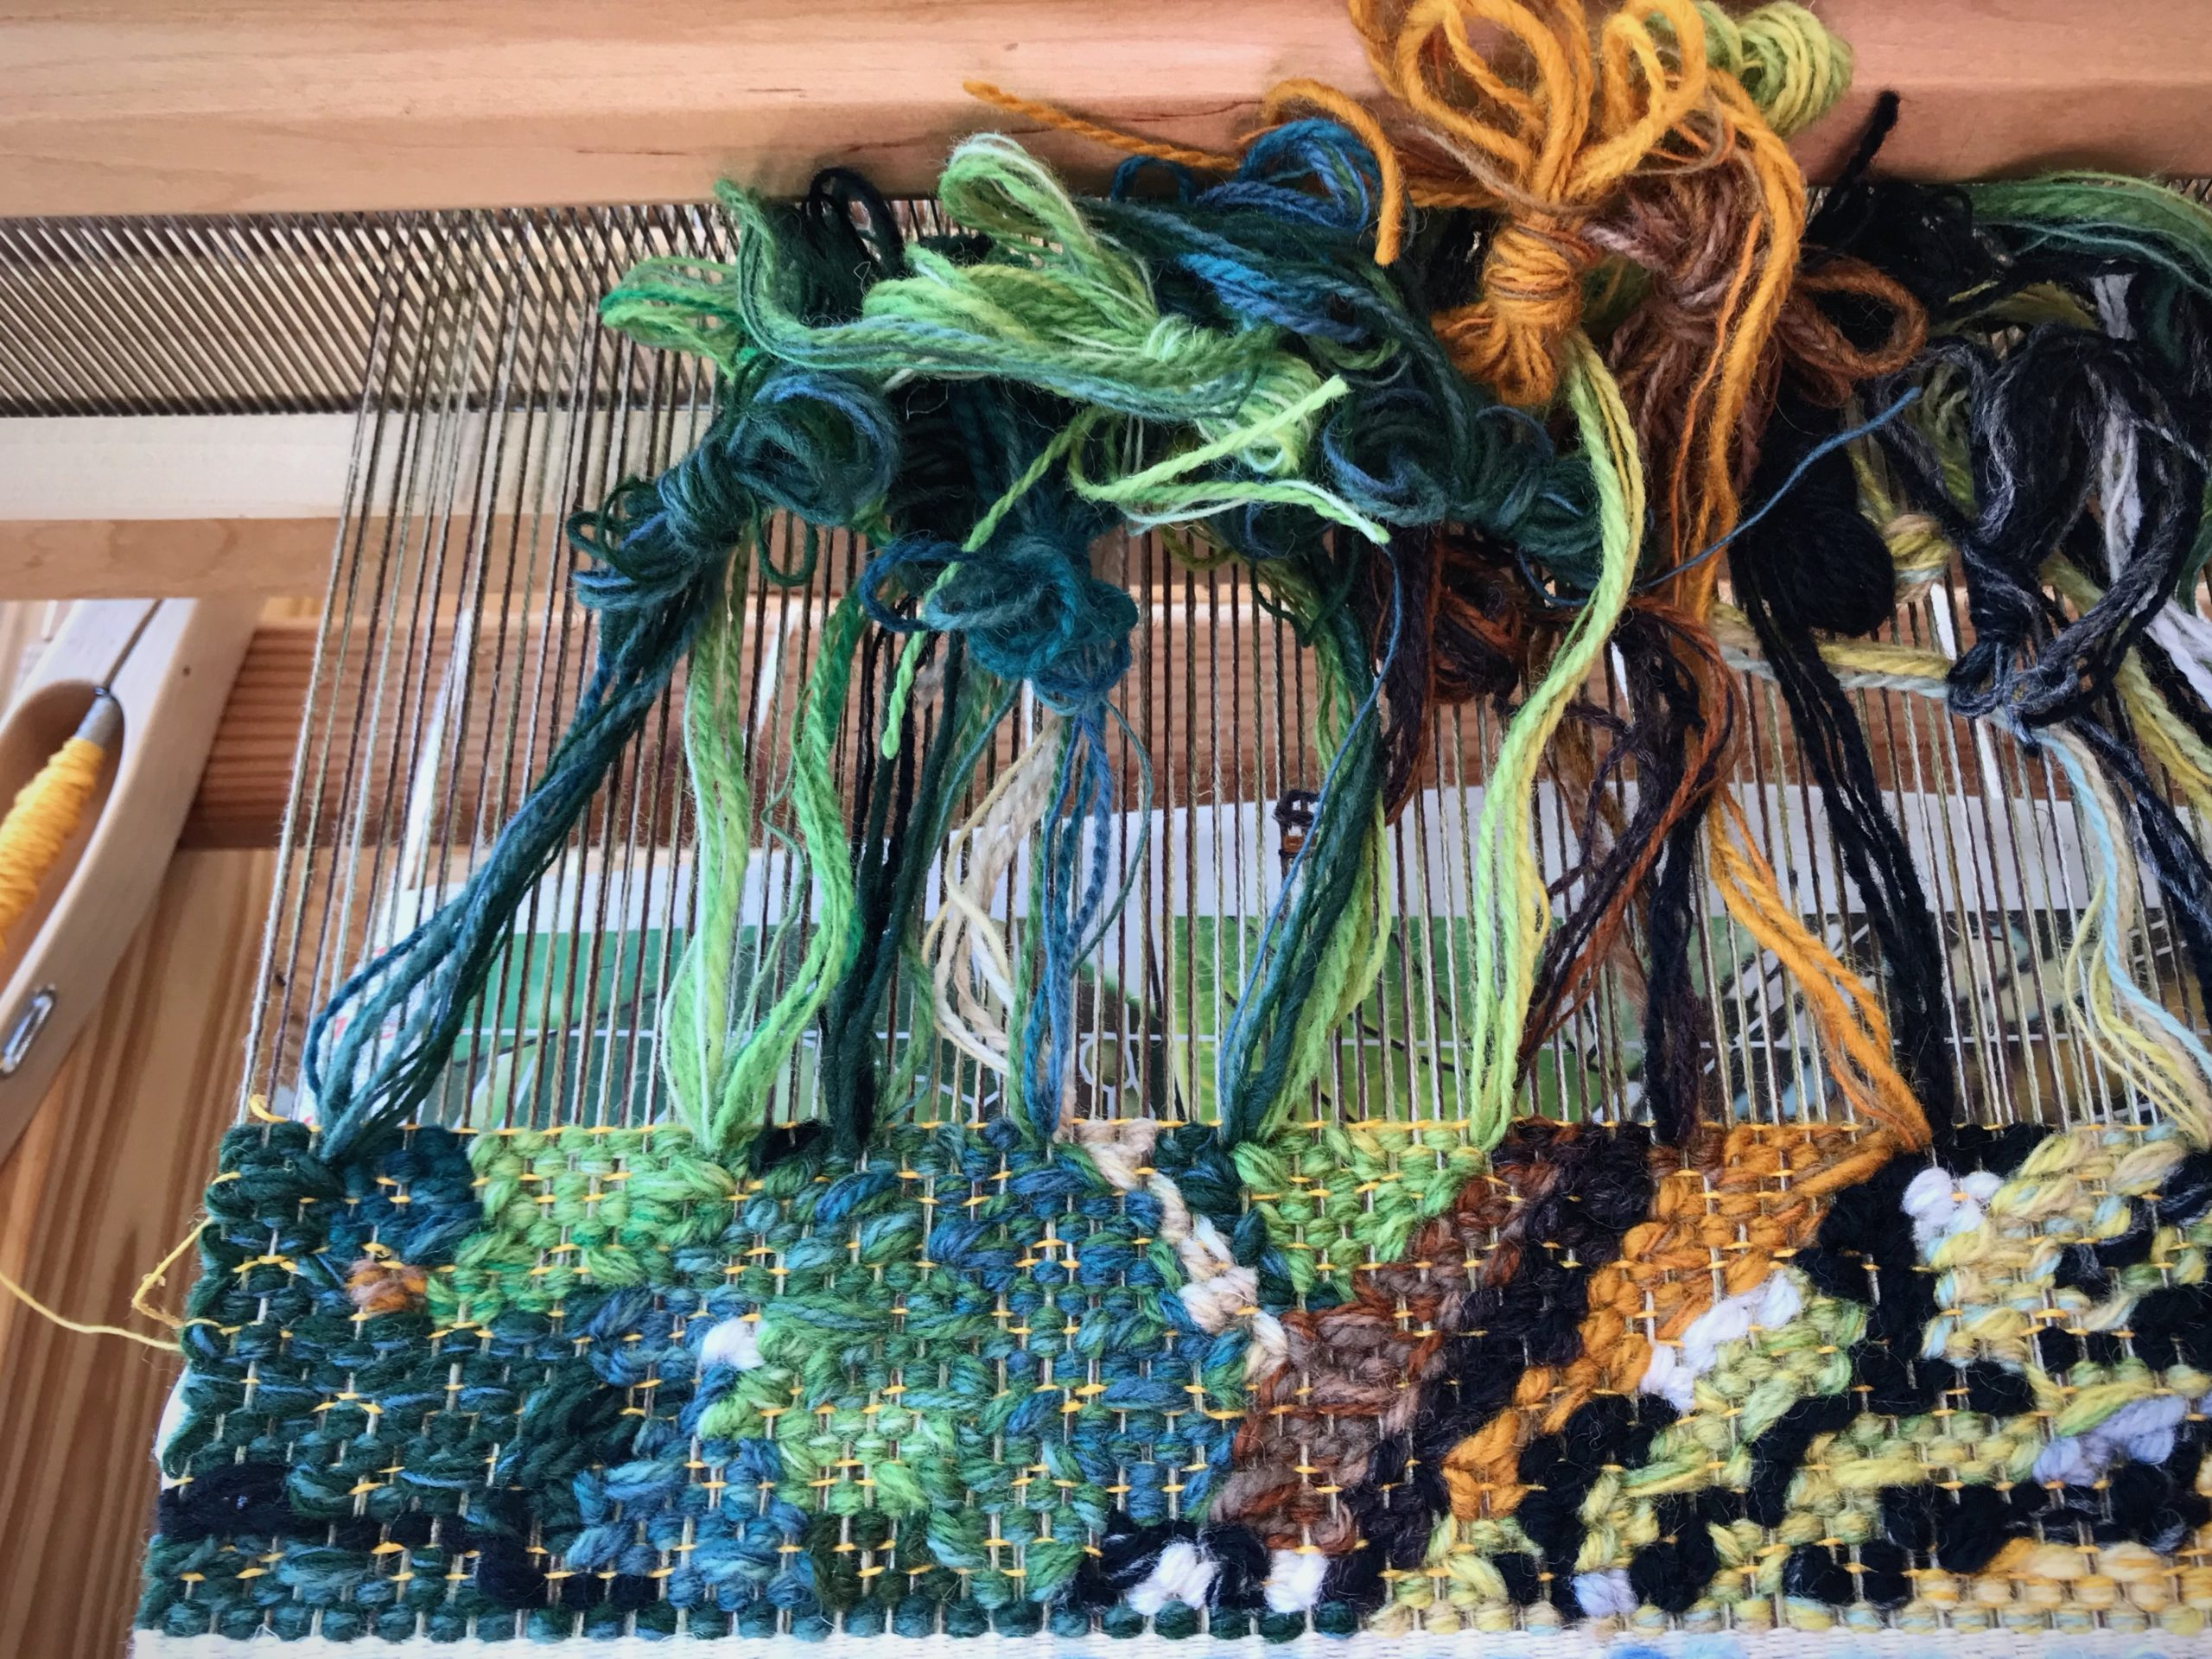 Weaving a new tapestry on the floor loom.